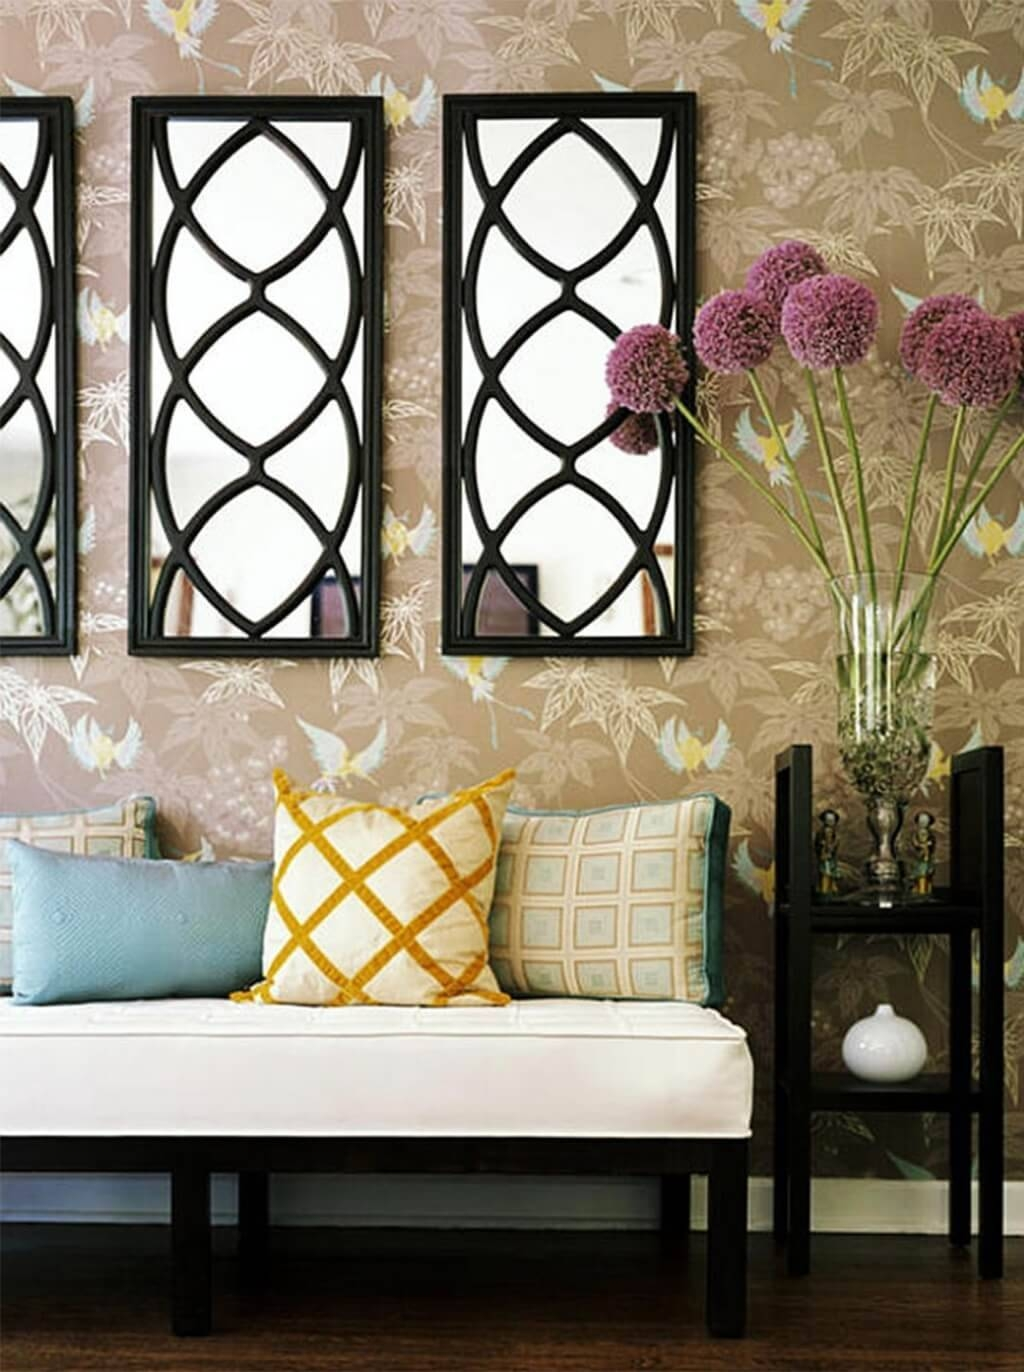 Perfect Decorative Wall Mirrors For Living Room | Jeffsbakery throughout Long Decorative Mirrors (Image 15 of 15)